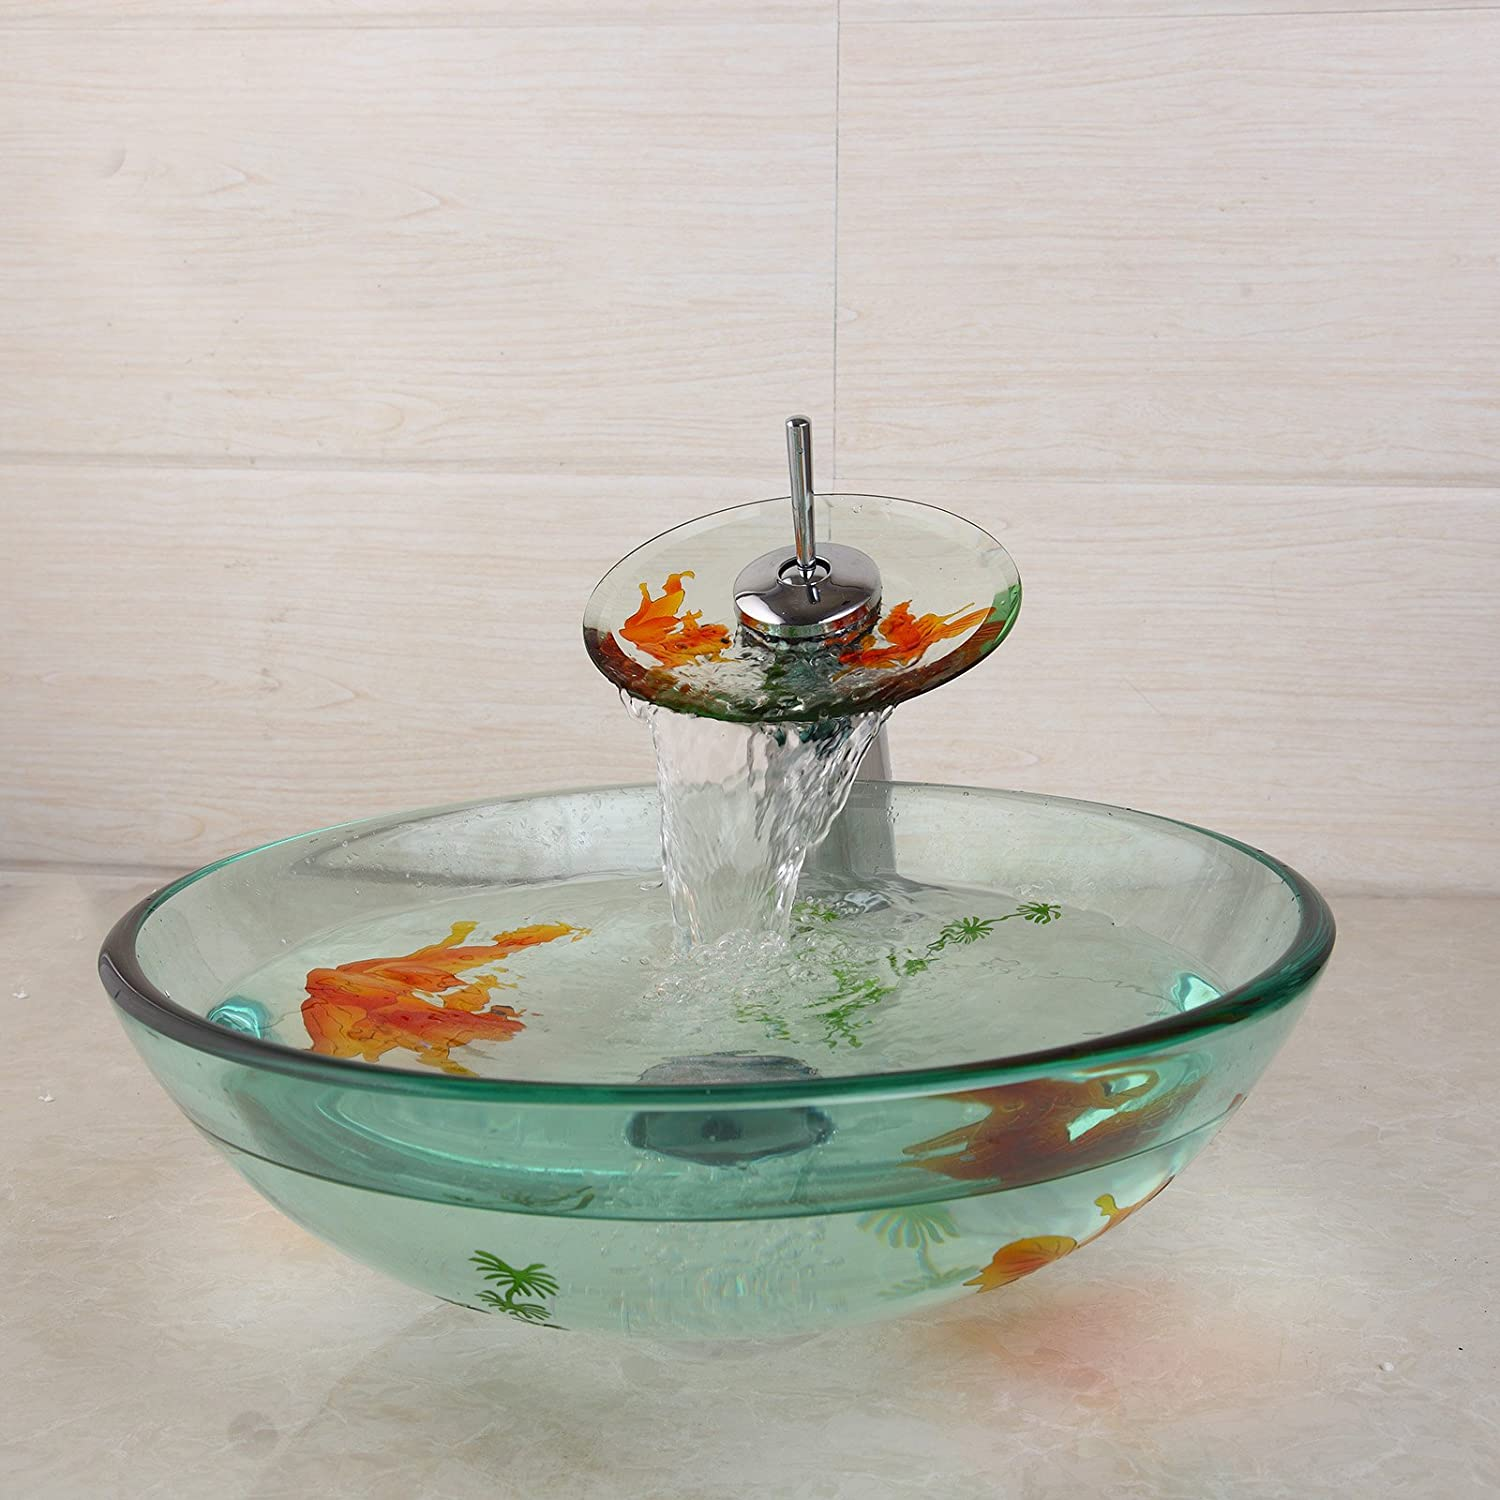 Bathroom Vessel Sinks With Waterfall Faucet Combo Goldfish And Grass Sculpture And Painting Round Basin